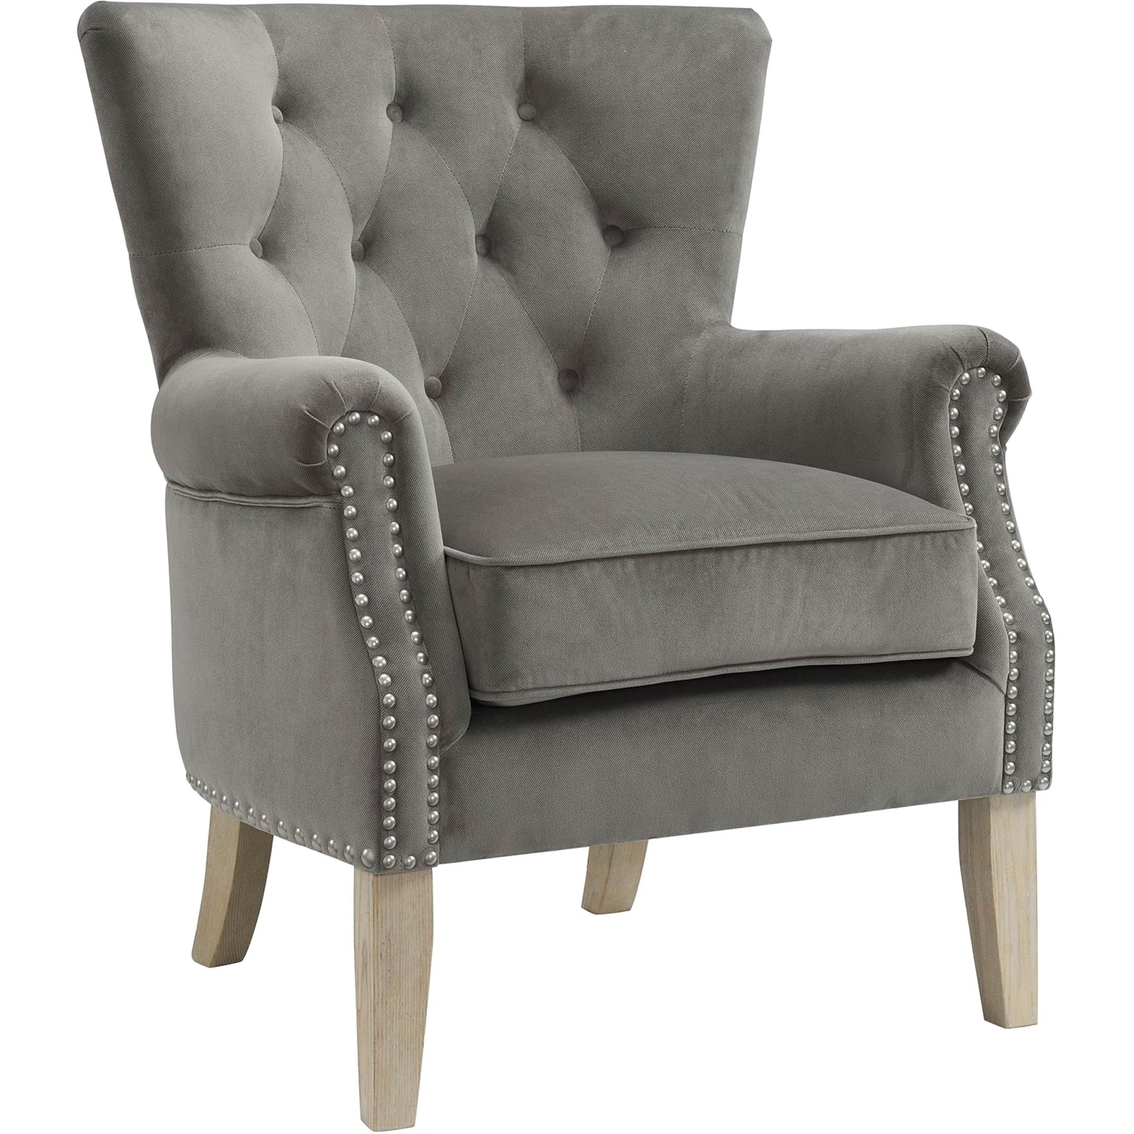 Dorel Living Accent Chair Chairs Amp Recliners Home